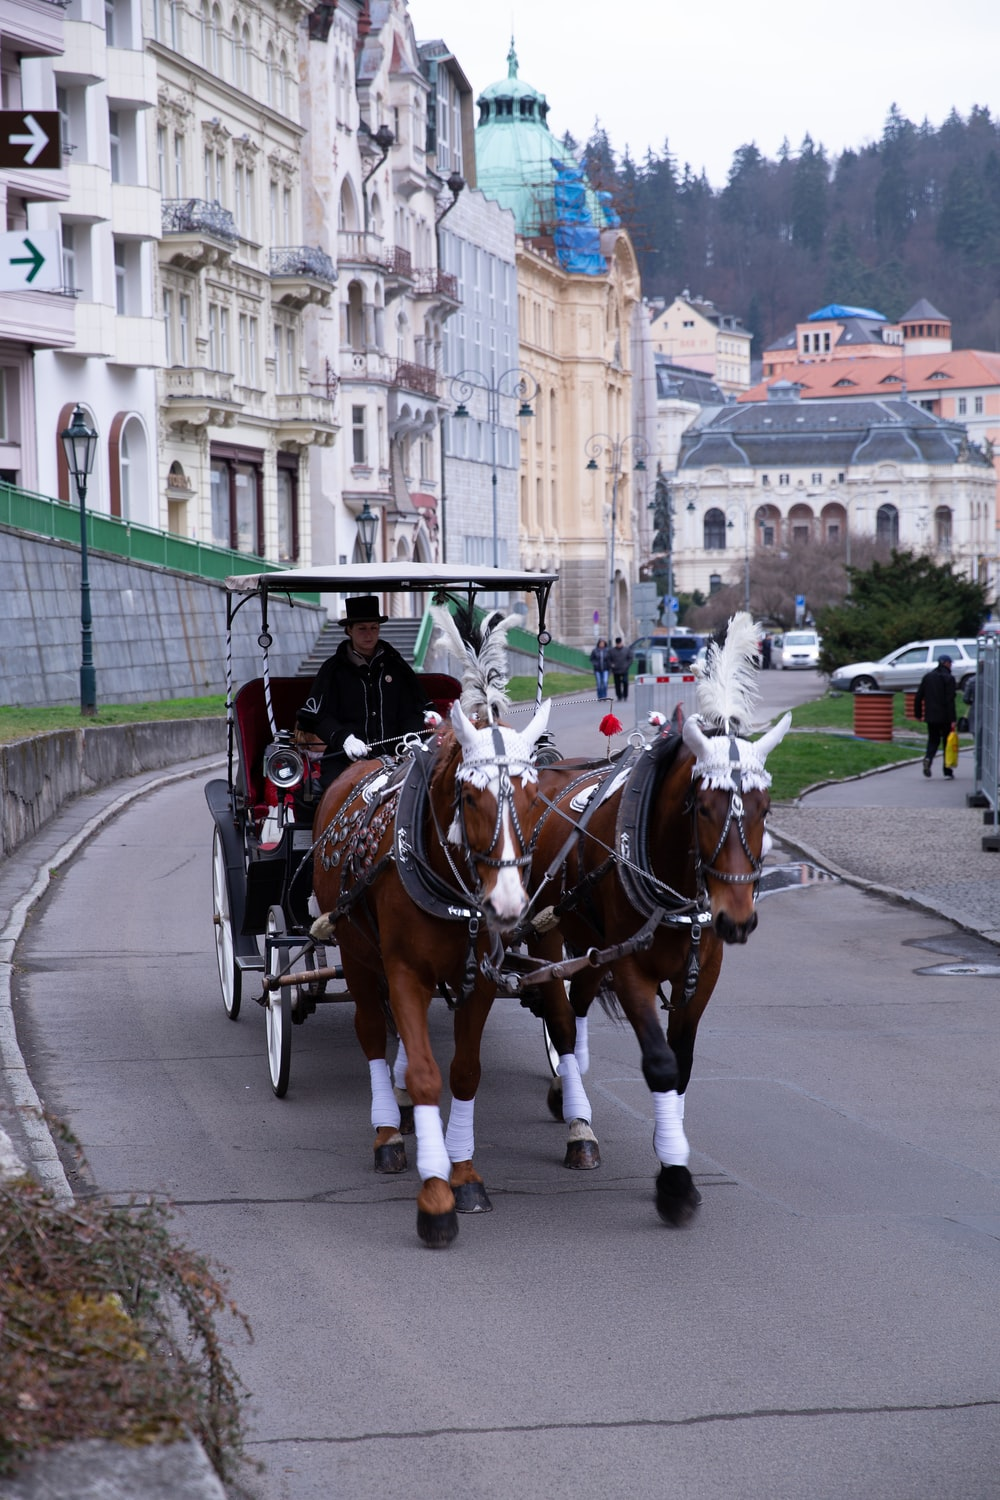 brown horse carriage during daytime